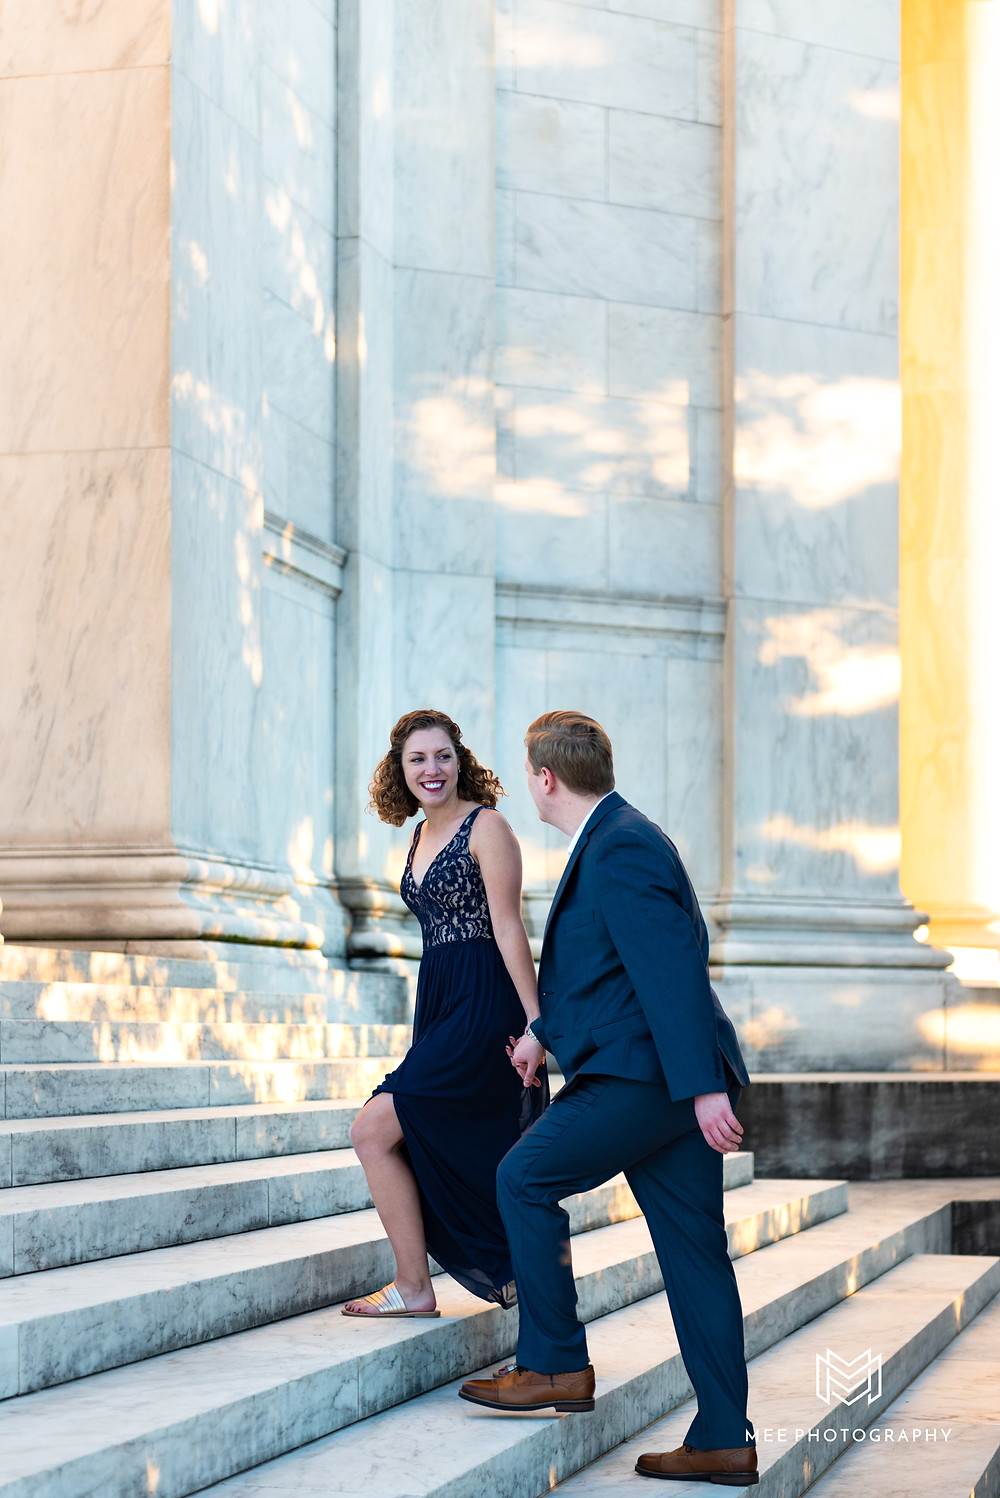 Washington D.C. engagement session ideas with the couple wearing a navy blue suit and gown